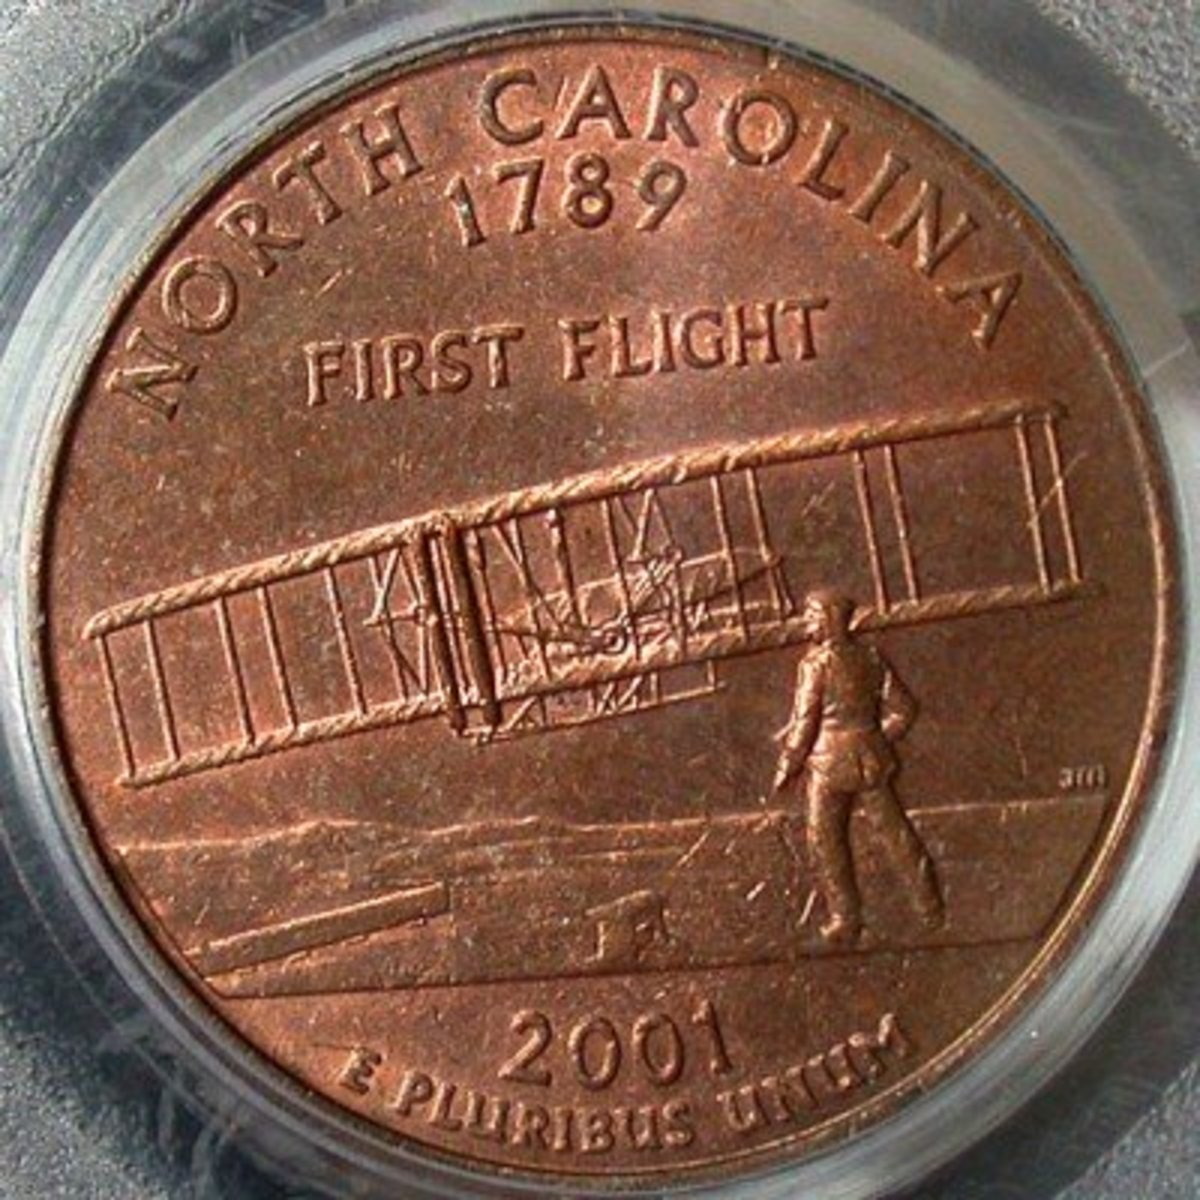 2001 North Carolina Missing Clad Layer Error. Photo Courtesy: coinpage.com